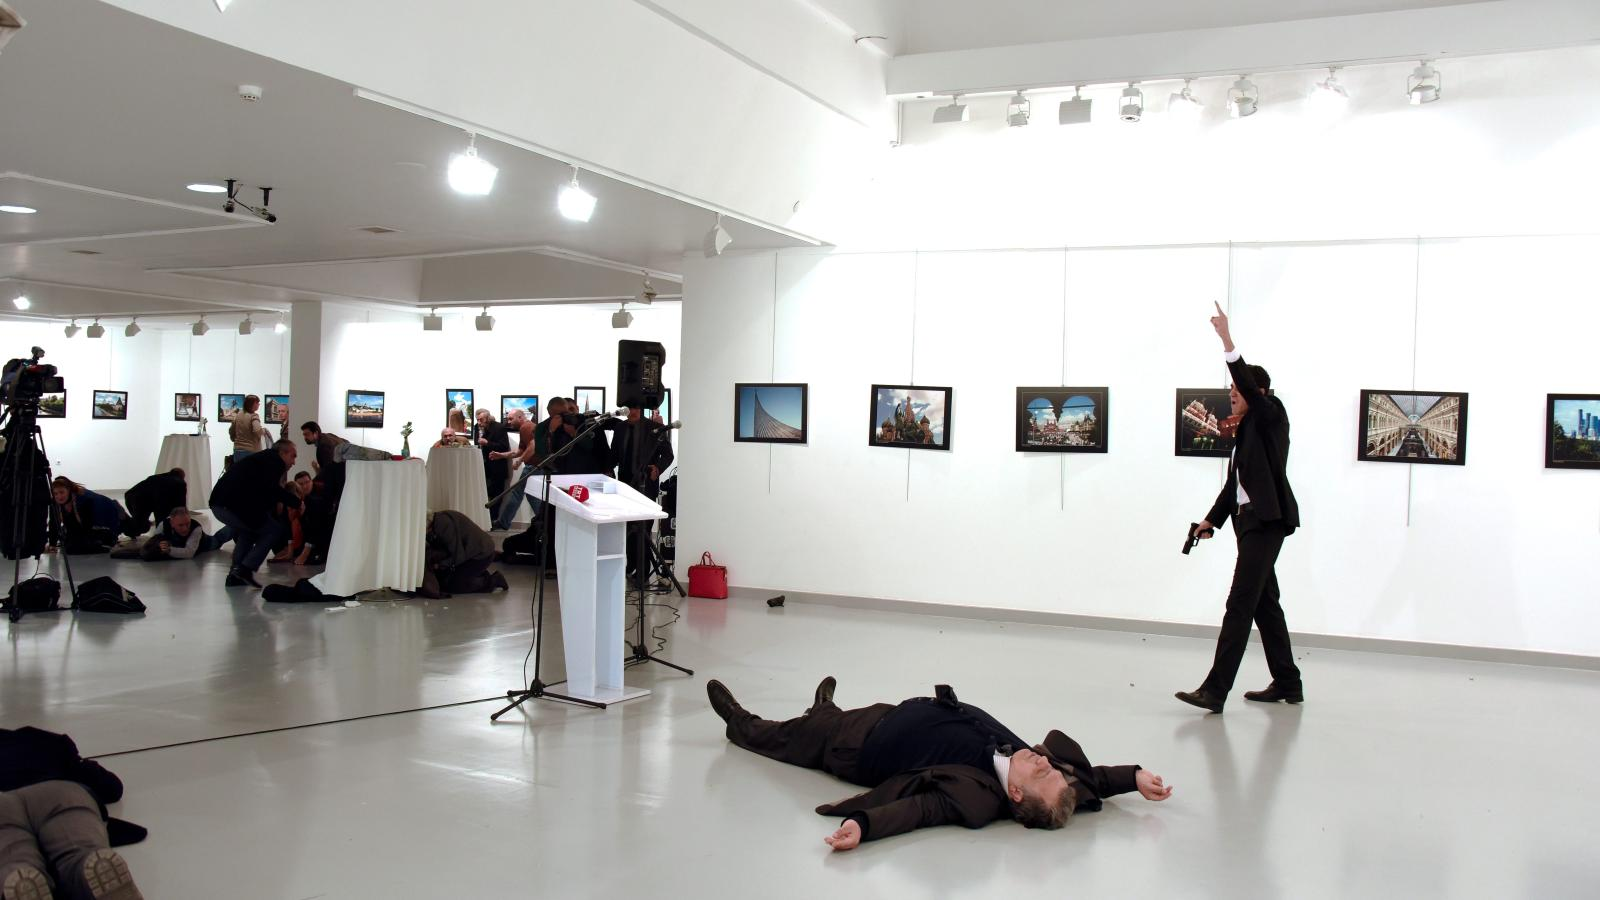 Assassination of Andrei Karlov